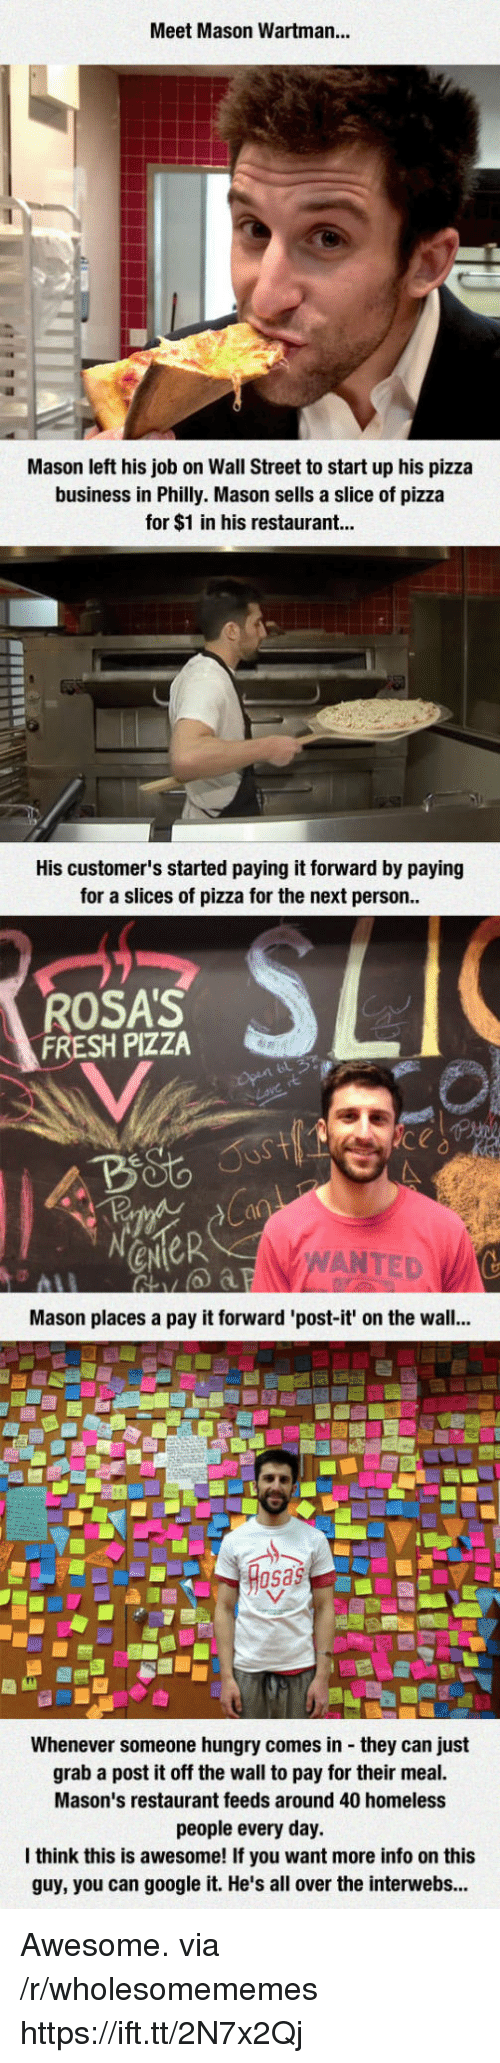 Rosas: Meet Mason Wartman...  Mason left his job on Wall Street to start up his pizza  business in Philly. Mason sells a slice of pizza  for $1 in his restaurant...  His customer's started paying it forward by paying  for a slices of pizza for the next person  ROSA'S  FRESH PIZZA  ANTED  Mason places a pay it forward 'post-it' on the wall...  sas  Whenever someone hungry comes in they can just  grab a post it off the wall to pay for their meal.  Mason's restaurant feeds around 40 homeless  people every day.  think this is awesome! If you want more info on this  guy, you can google it. He's all over the interwebs... Awesome. via /r/wholesomememes https://ift.tt/2N7x2Qj